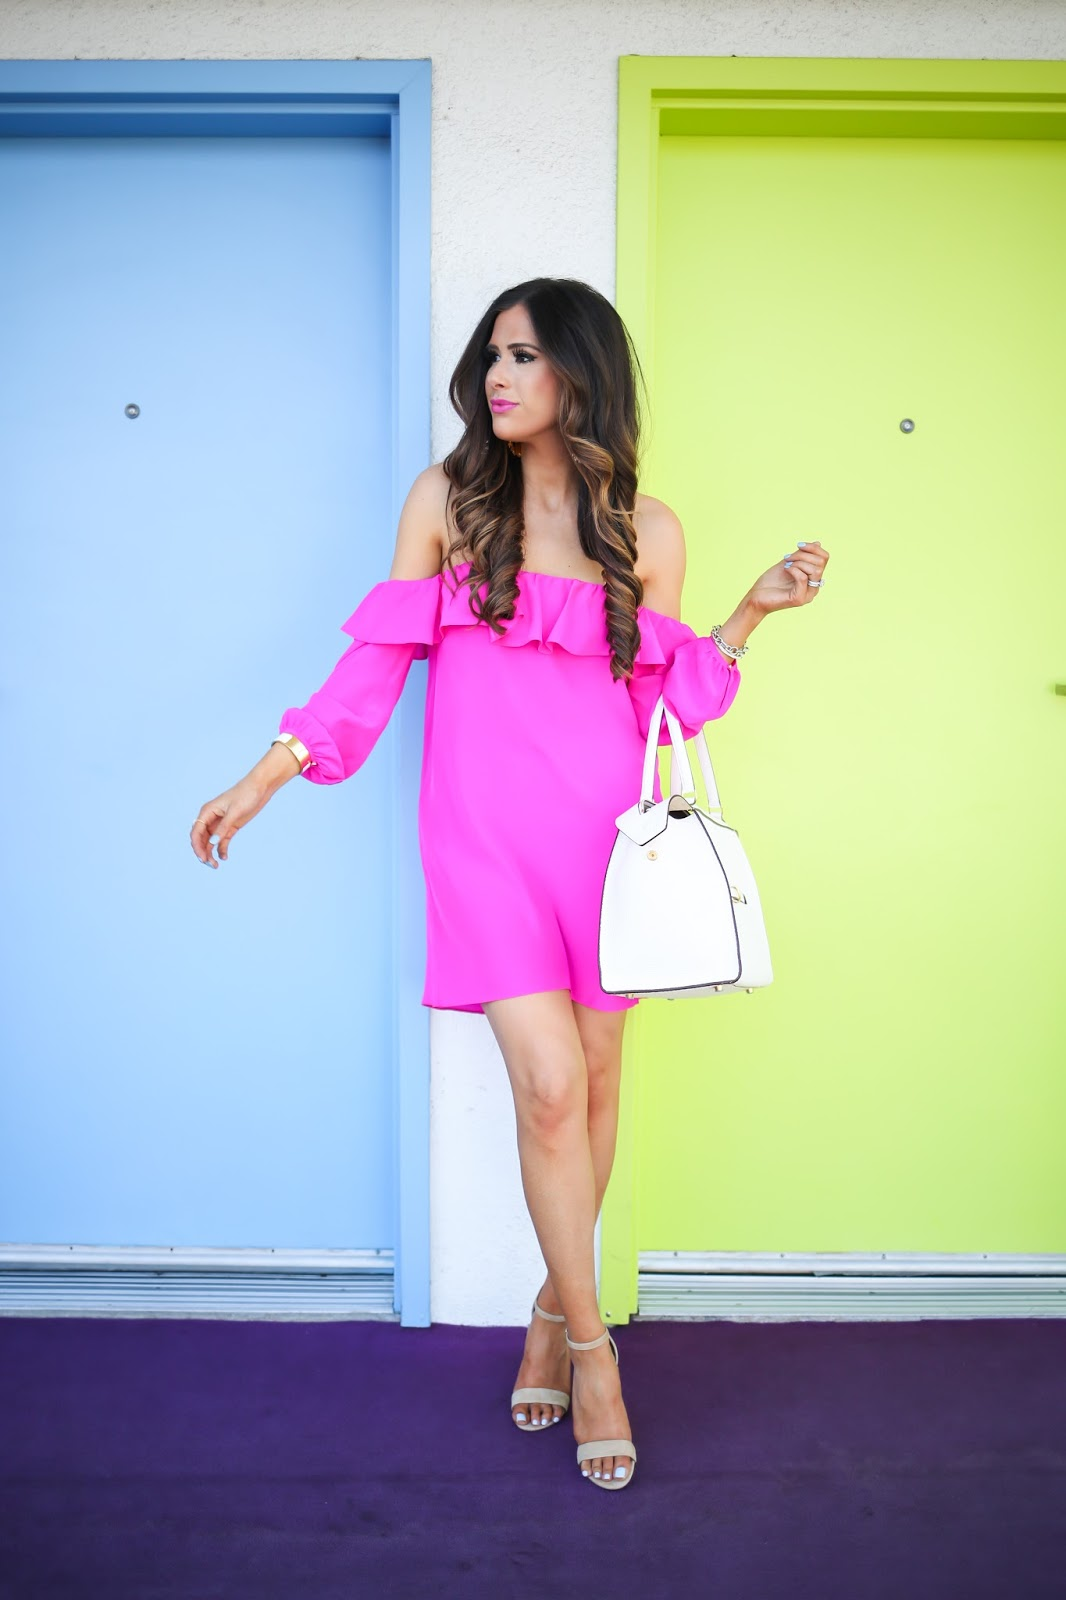 amanda uprichard dress joanna dress, amanda uprichard hot pink dress,steve madden carrsen sandal, spring fashion 2106, pinterest spring outfit ideas, easter dress ideas 2016, easter dresses 2016, easter dresses nordstrom 2016, pinterest hot pink dresses, pinterest vacation california outfits, david yurman chain link bracelet, brunette balayage hair, medium long layers haircut, medium haircut brunette balayage, how to curl hair with curling iron, hot pink dresses for spring, nordstorm pink dresses, emily gemma, celine ring bag white, elizabeth cole fringe earrings, the sweetest thing, the saguaro palm springs, white SNS powder nails, tulsa SNS powder